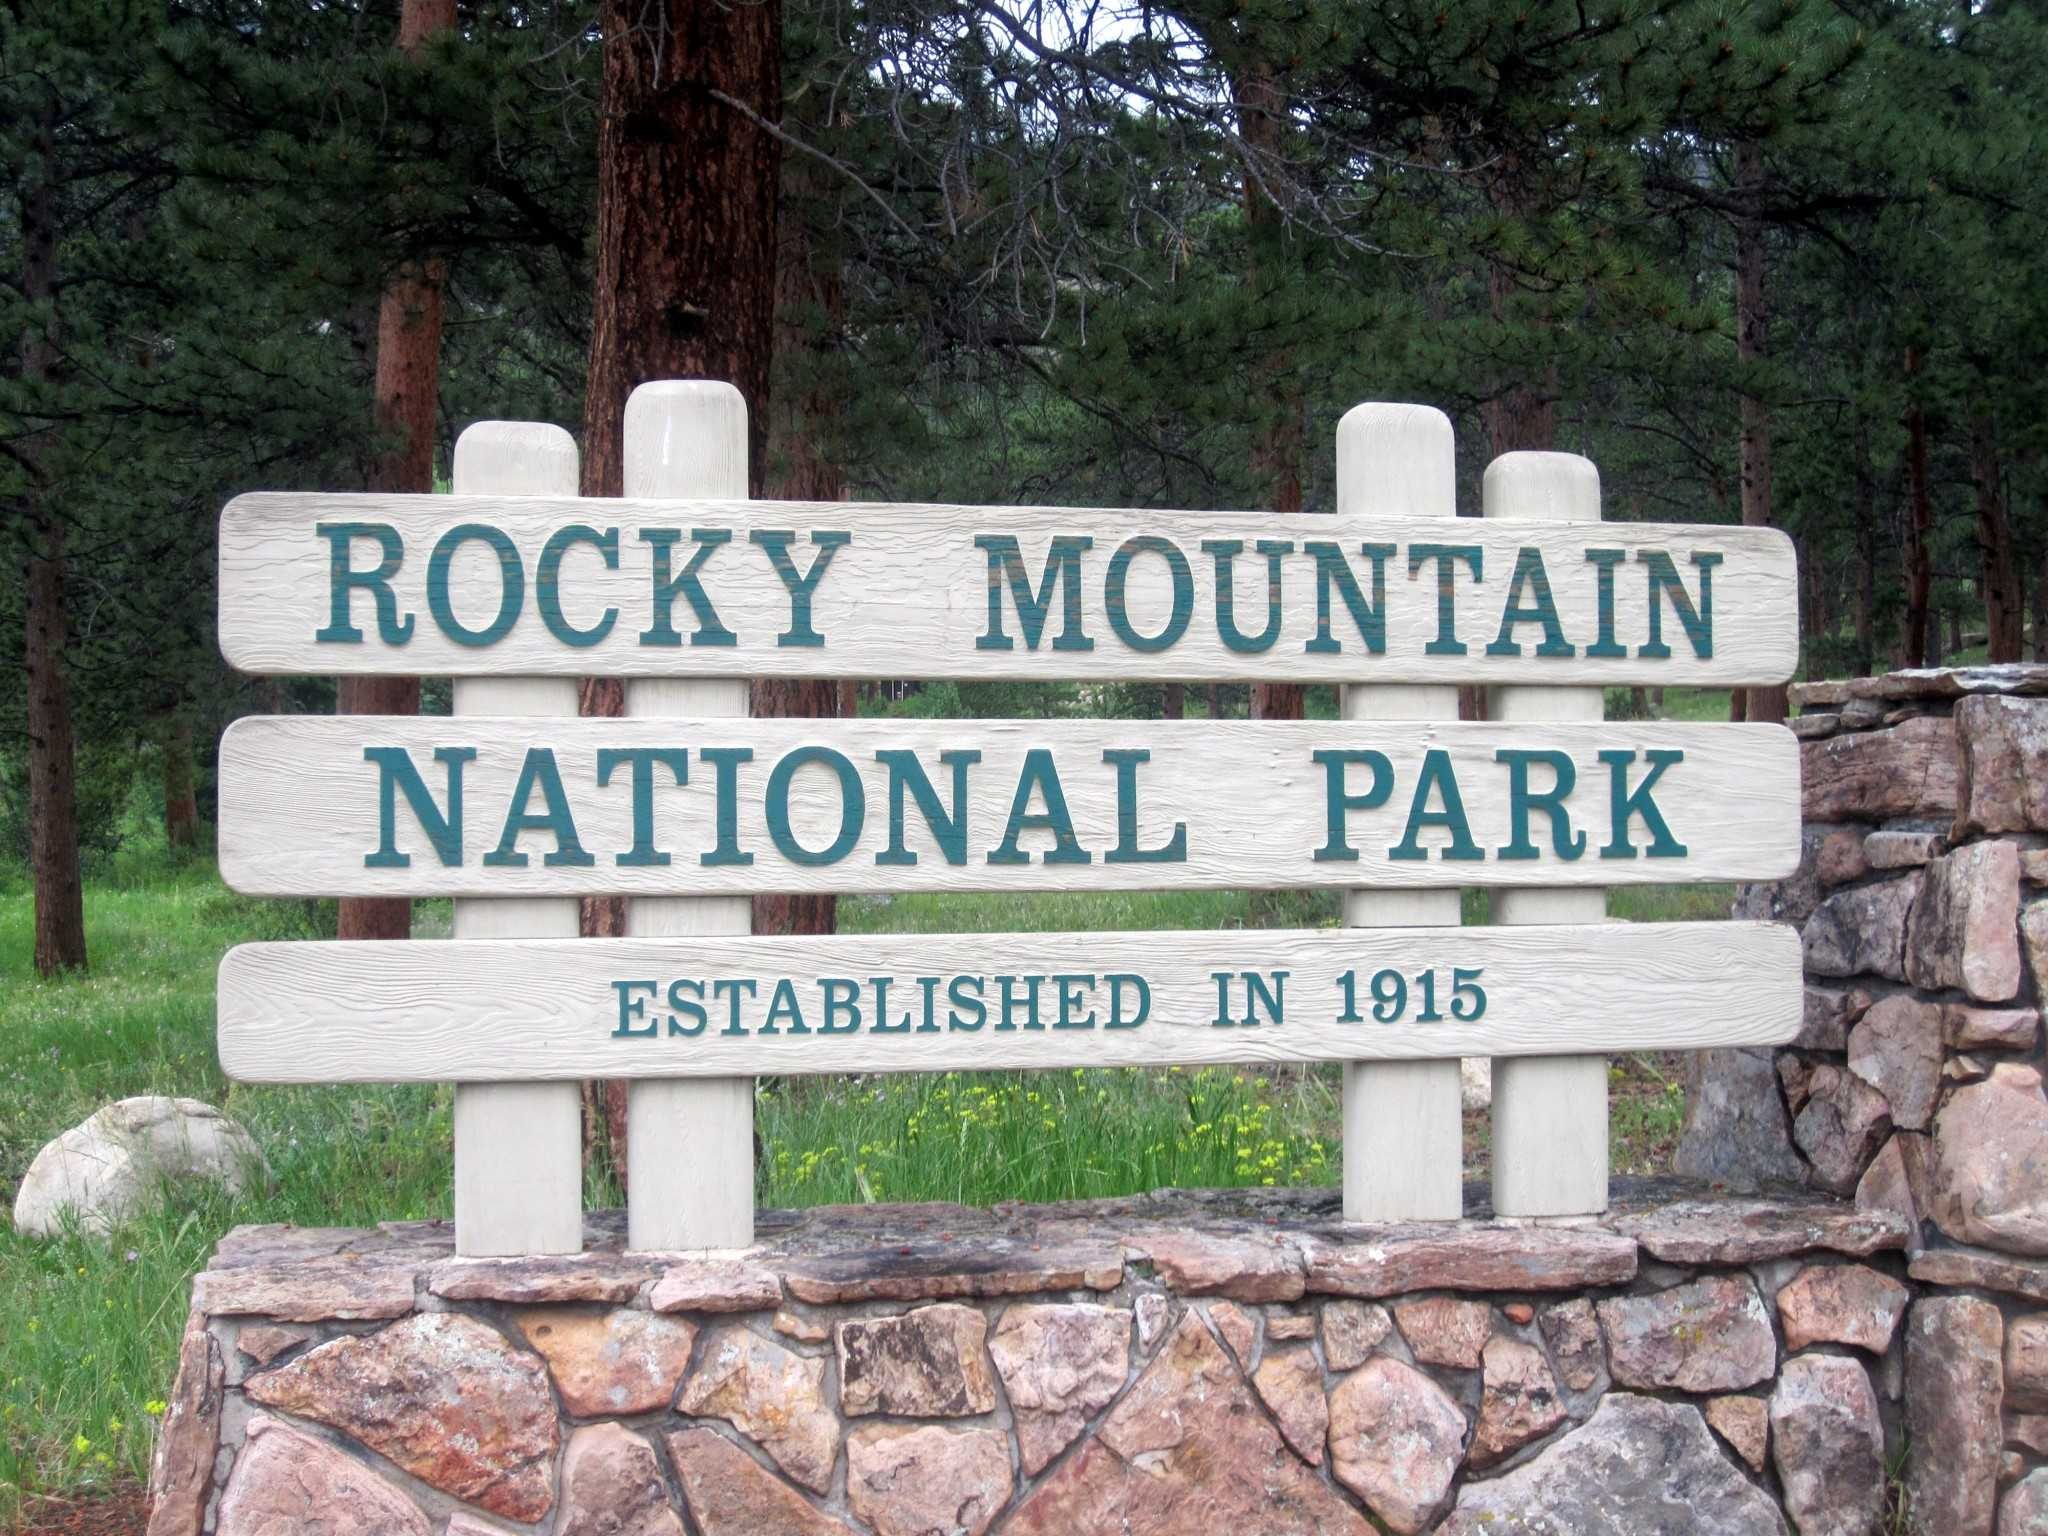 Rocky_Mountain_National_Park_entrance_sign_IMG_5252